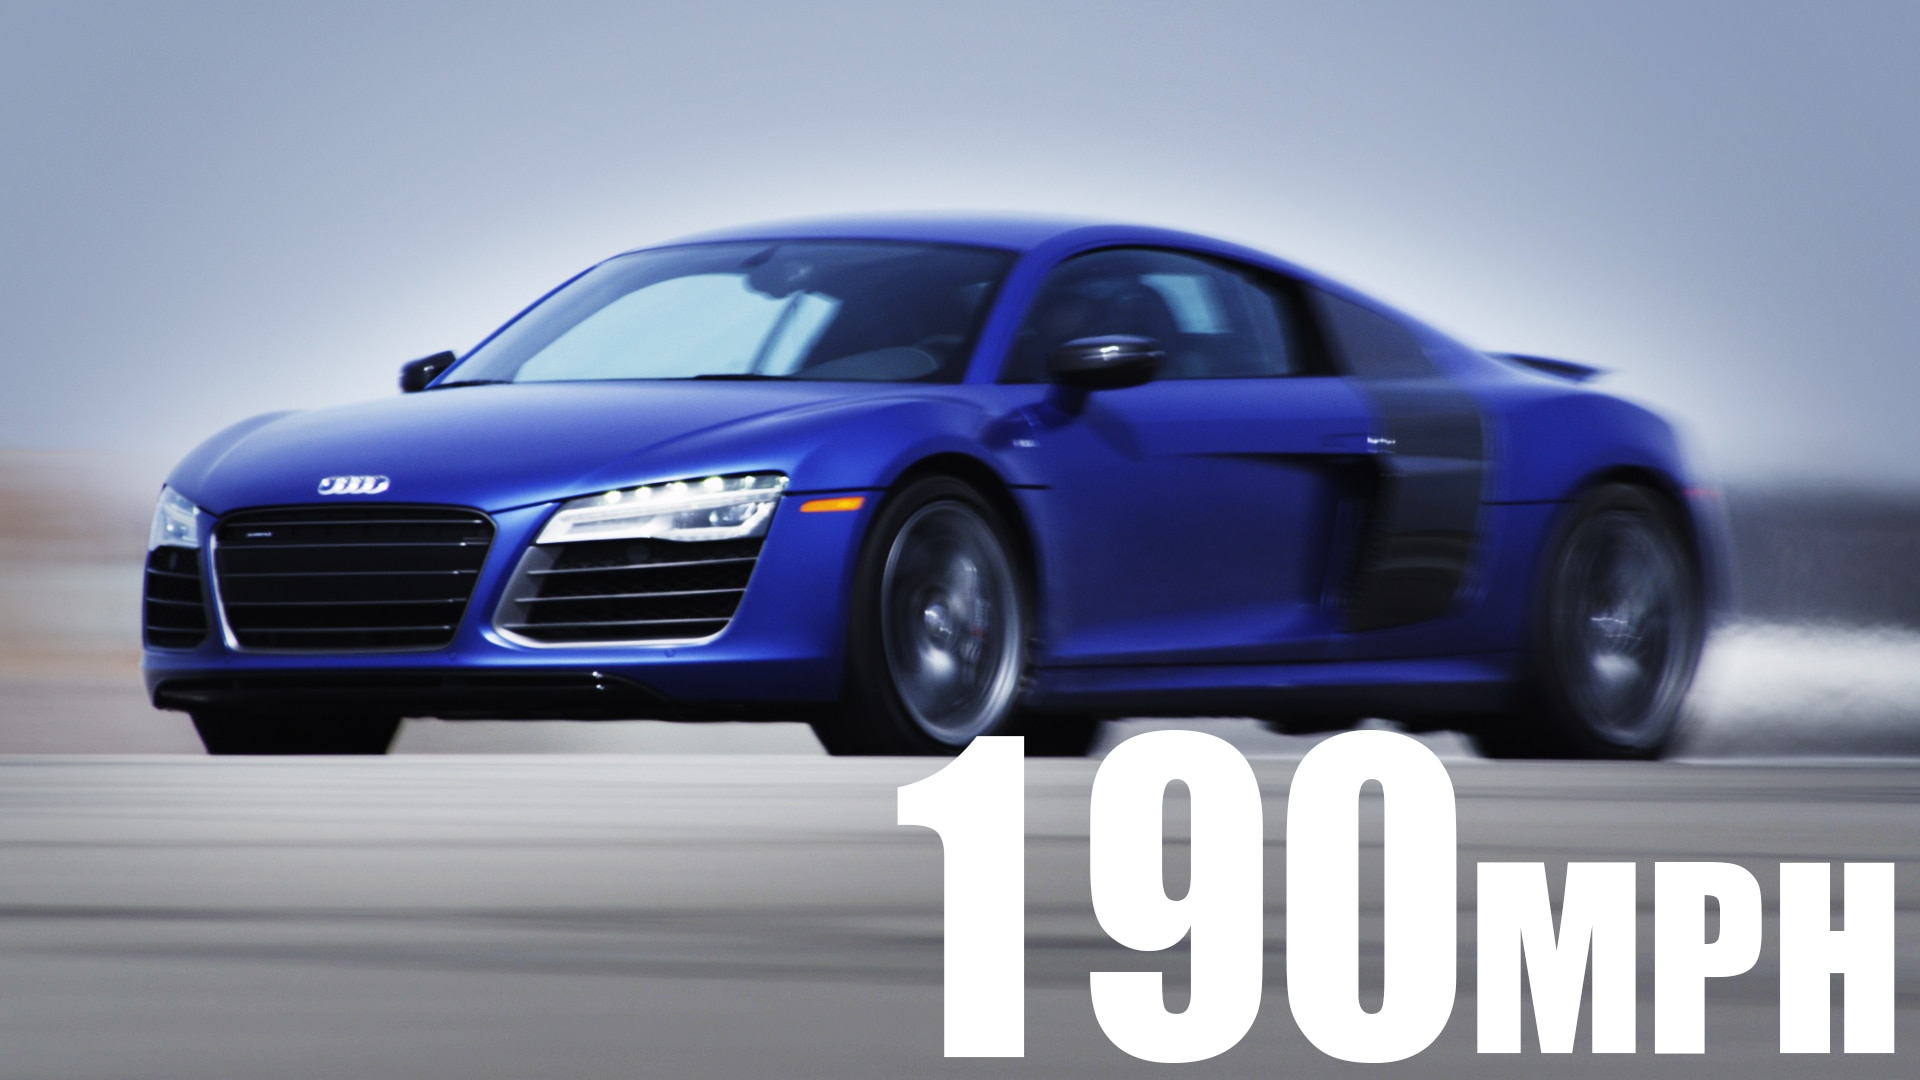 2014 Audi R8 V10 Plus 190 Mph Video Still